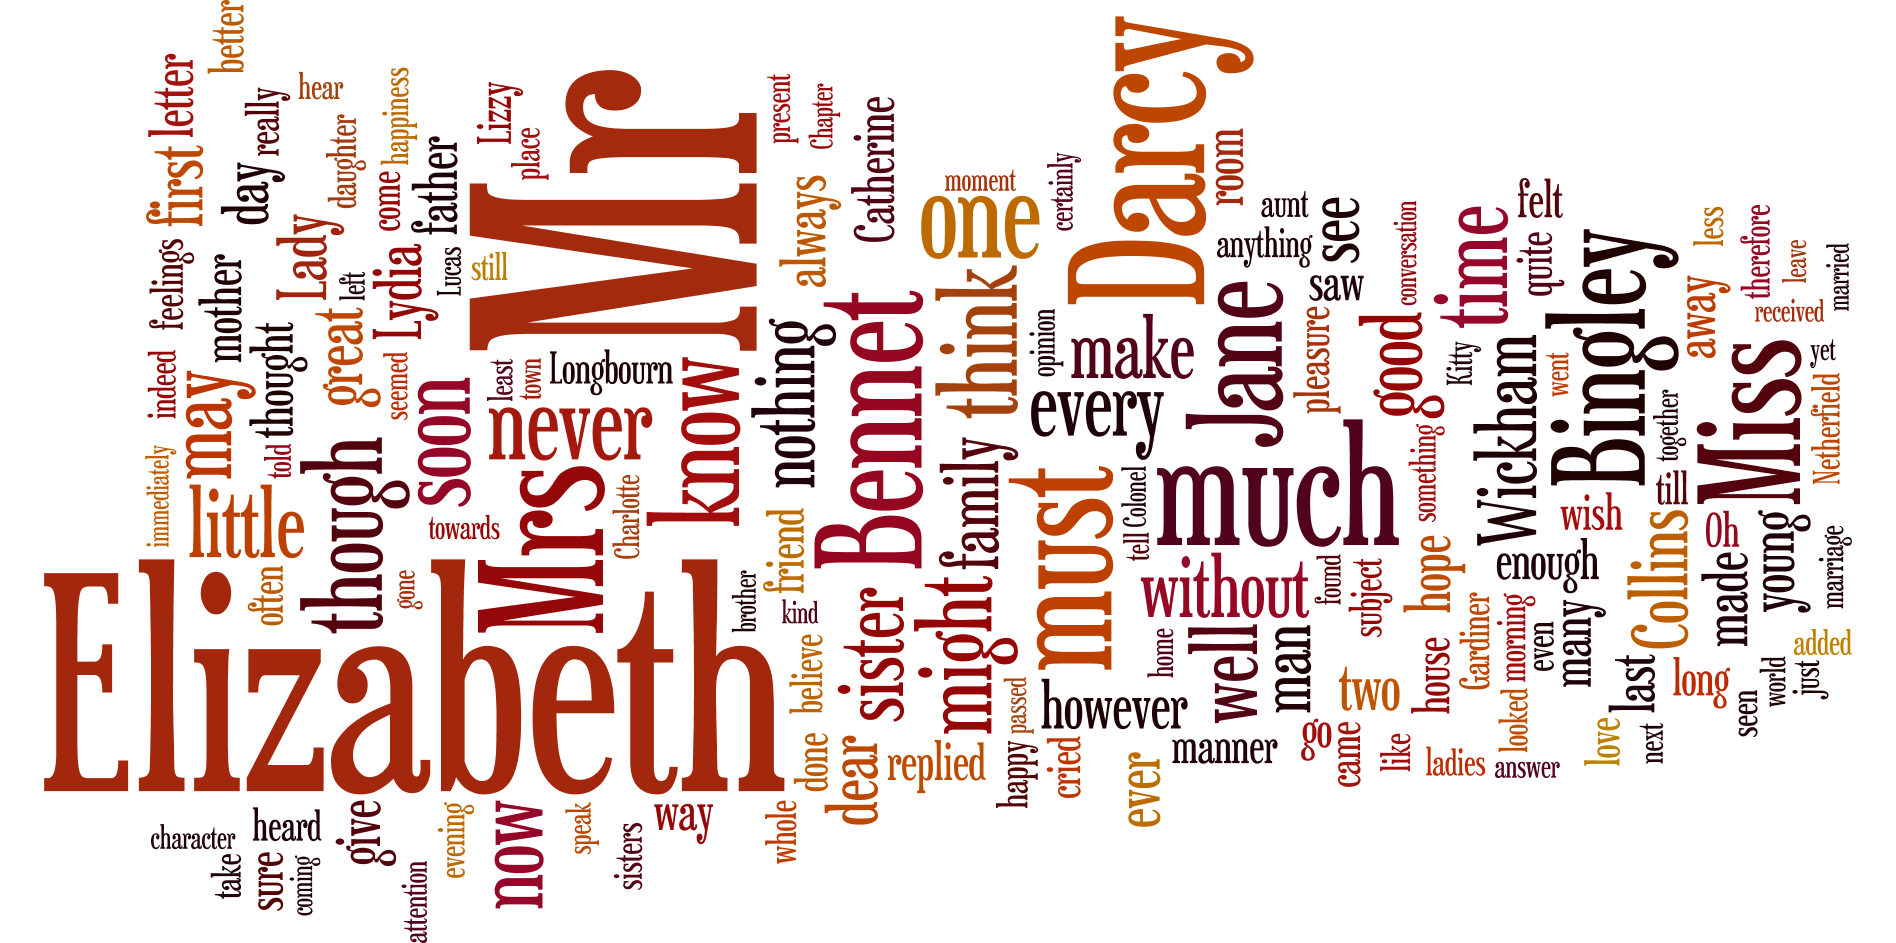 word cloud of Jane Austen's Pride and Prejudice